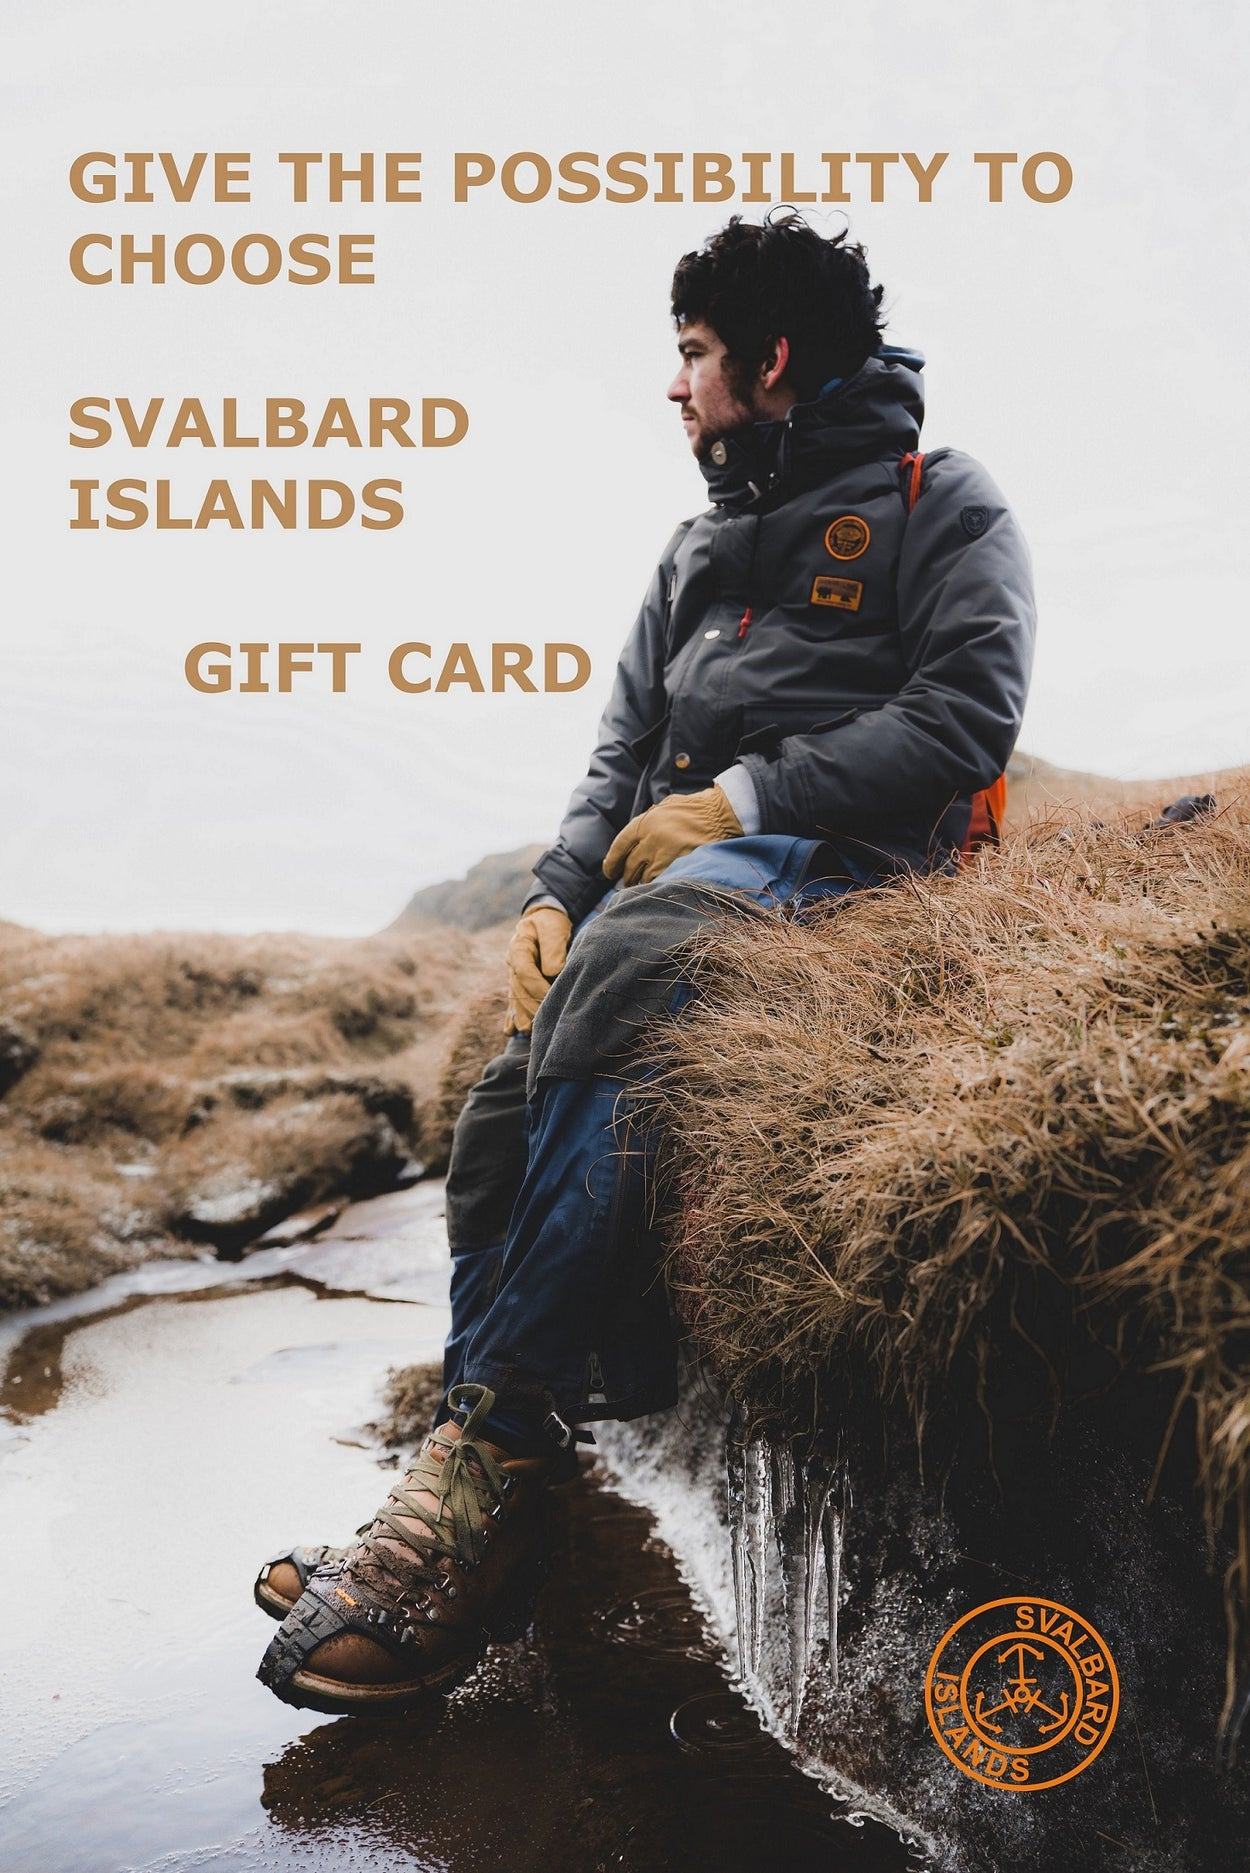 SVALBARD ISLANDS GIFT CARD